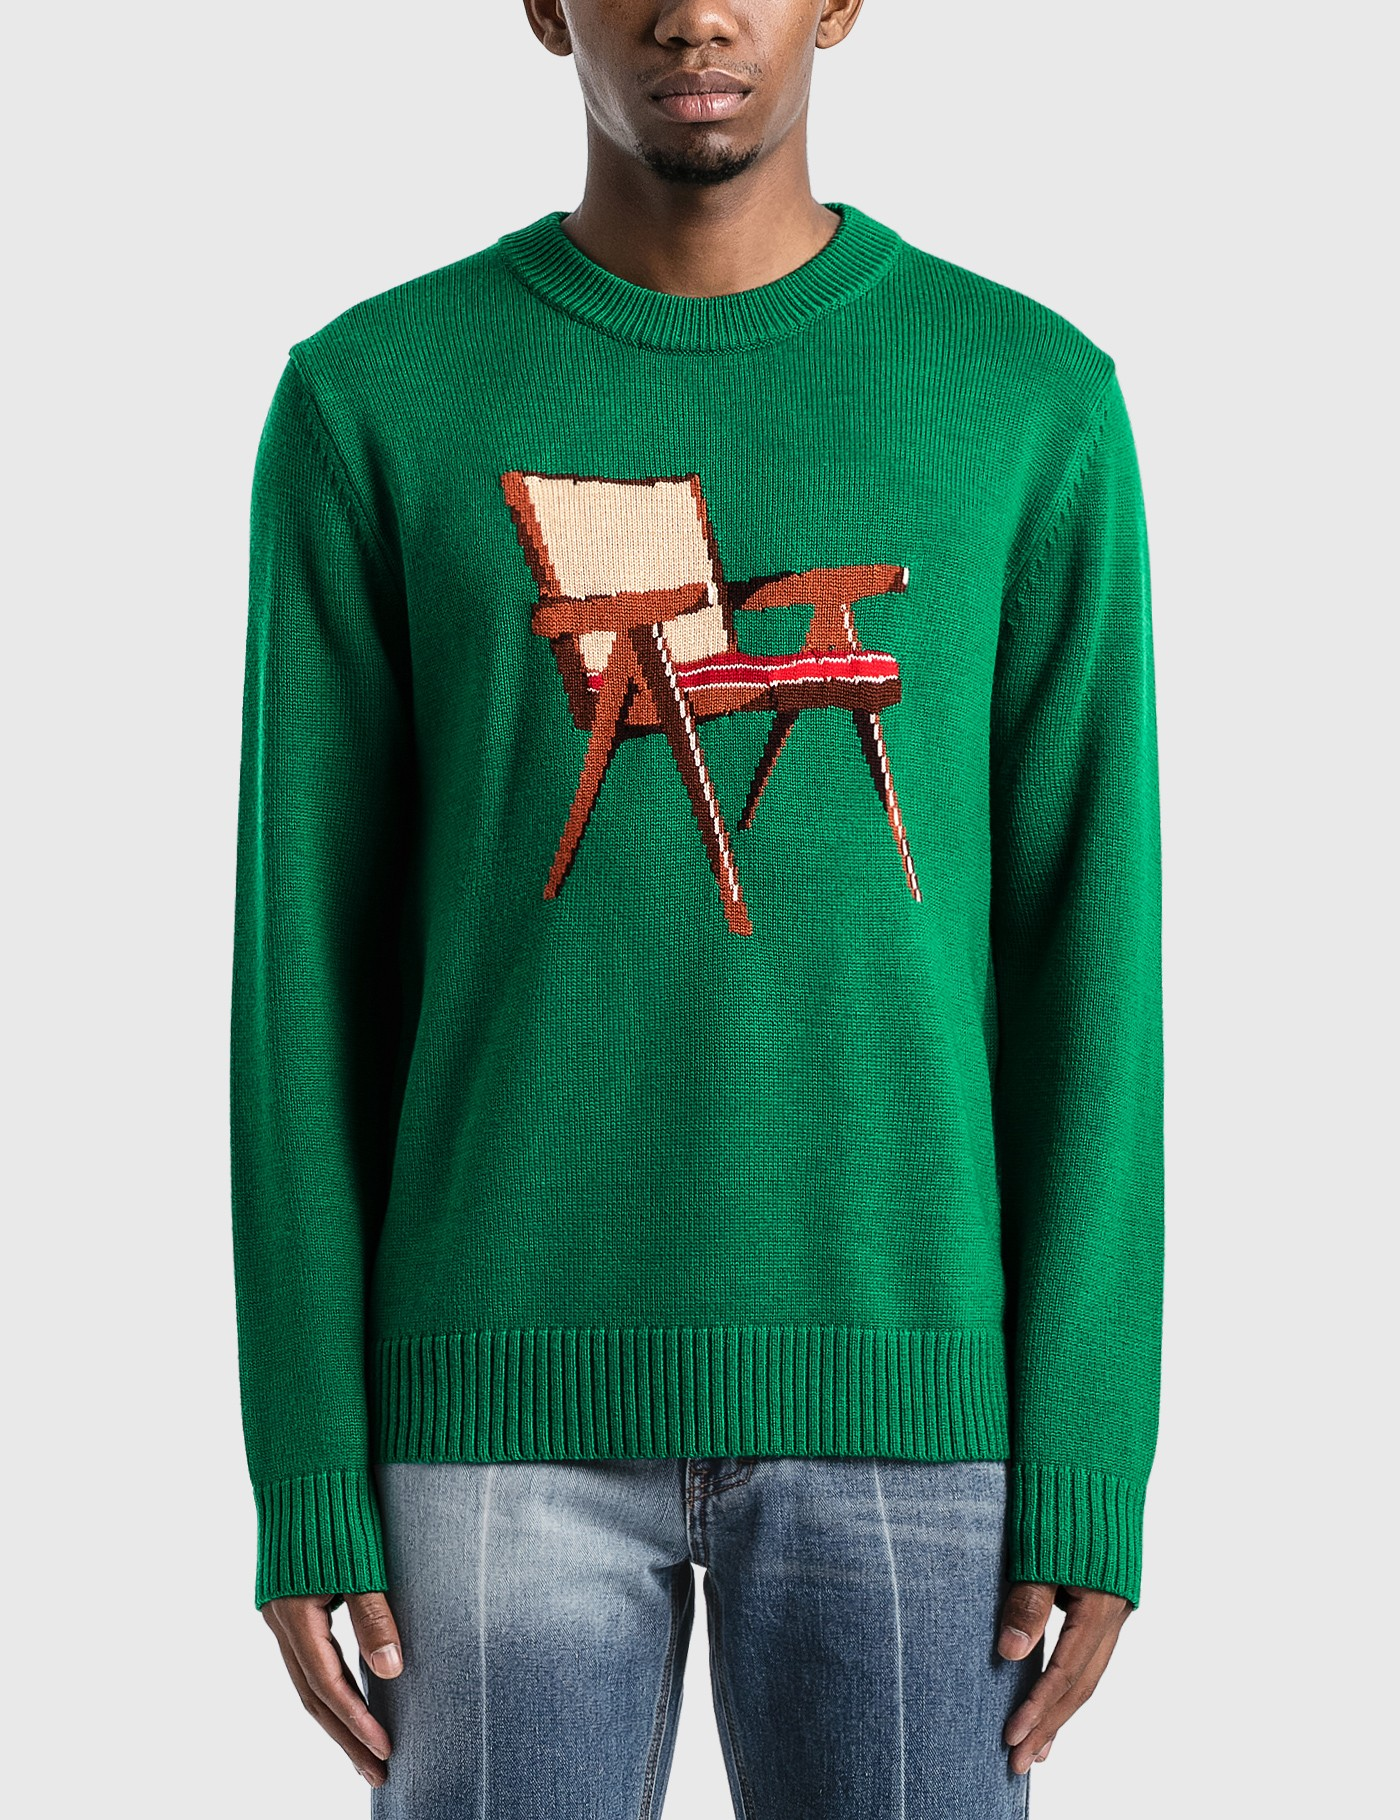 Casablanca Sweaters THE ART OF SITTING KNITTED SWEATER